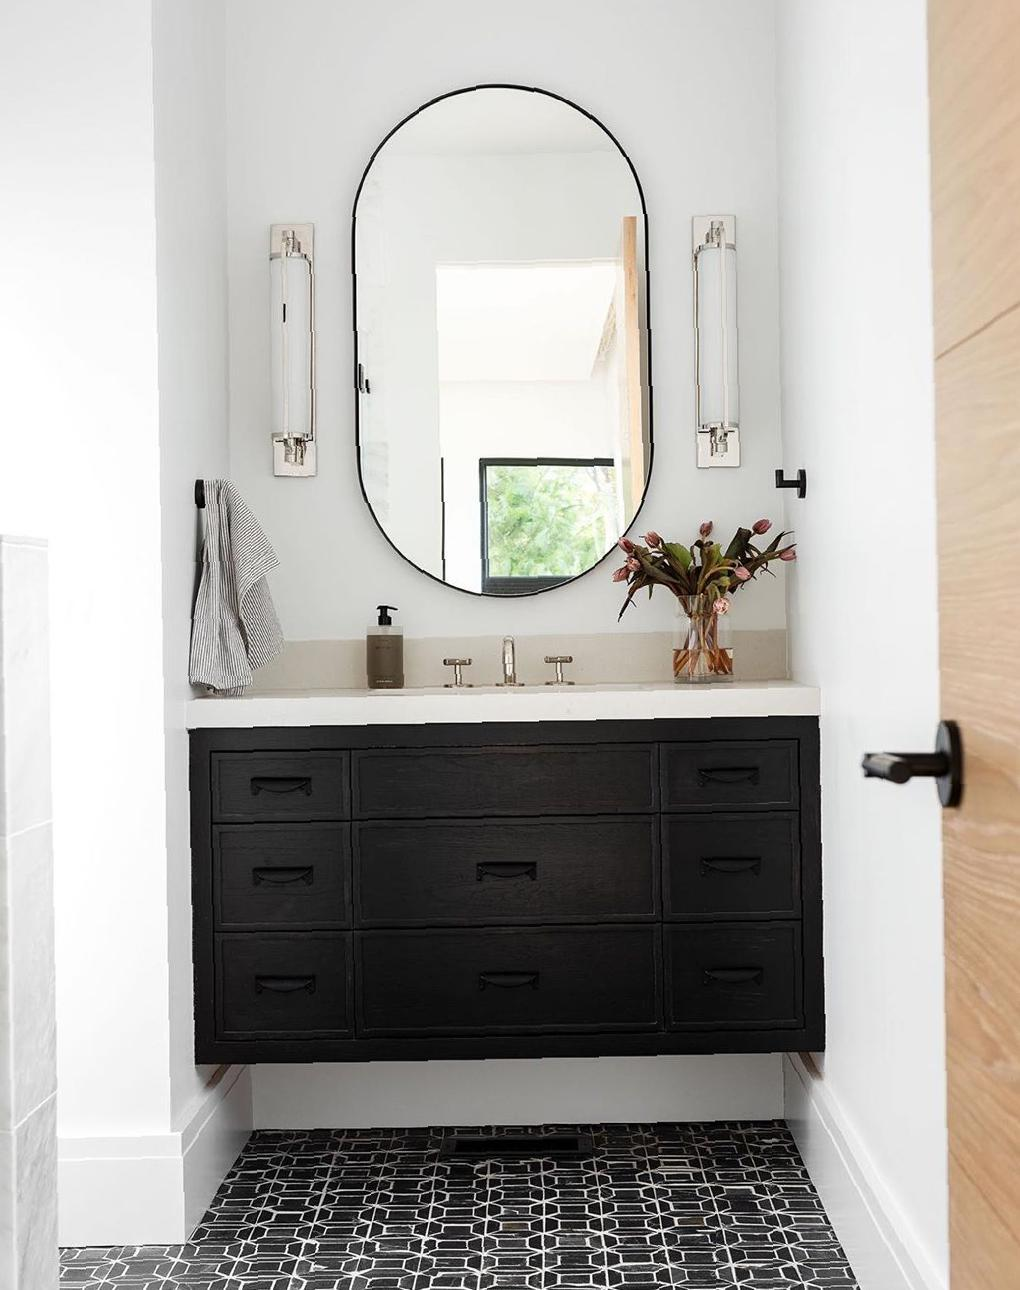 Beautiful Bathroom Decorations that Let Your Home Become More Warm and Comfortable! - Page 11 of 19 - Guide19 Blog